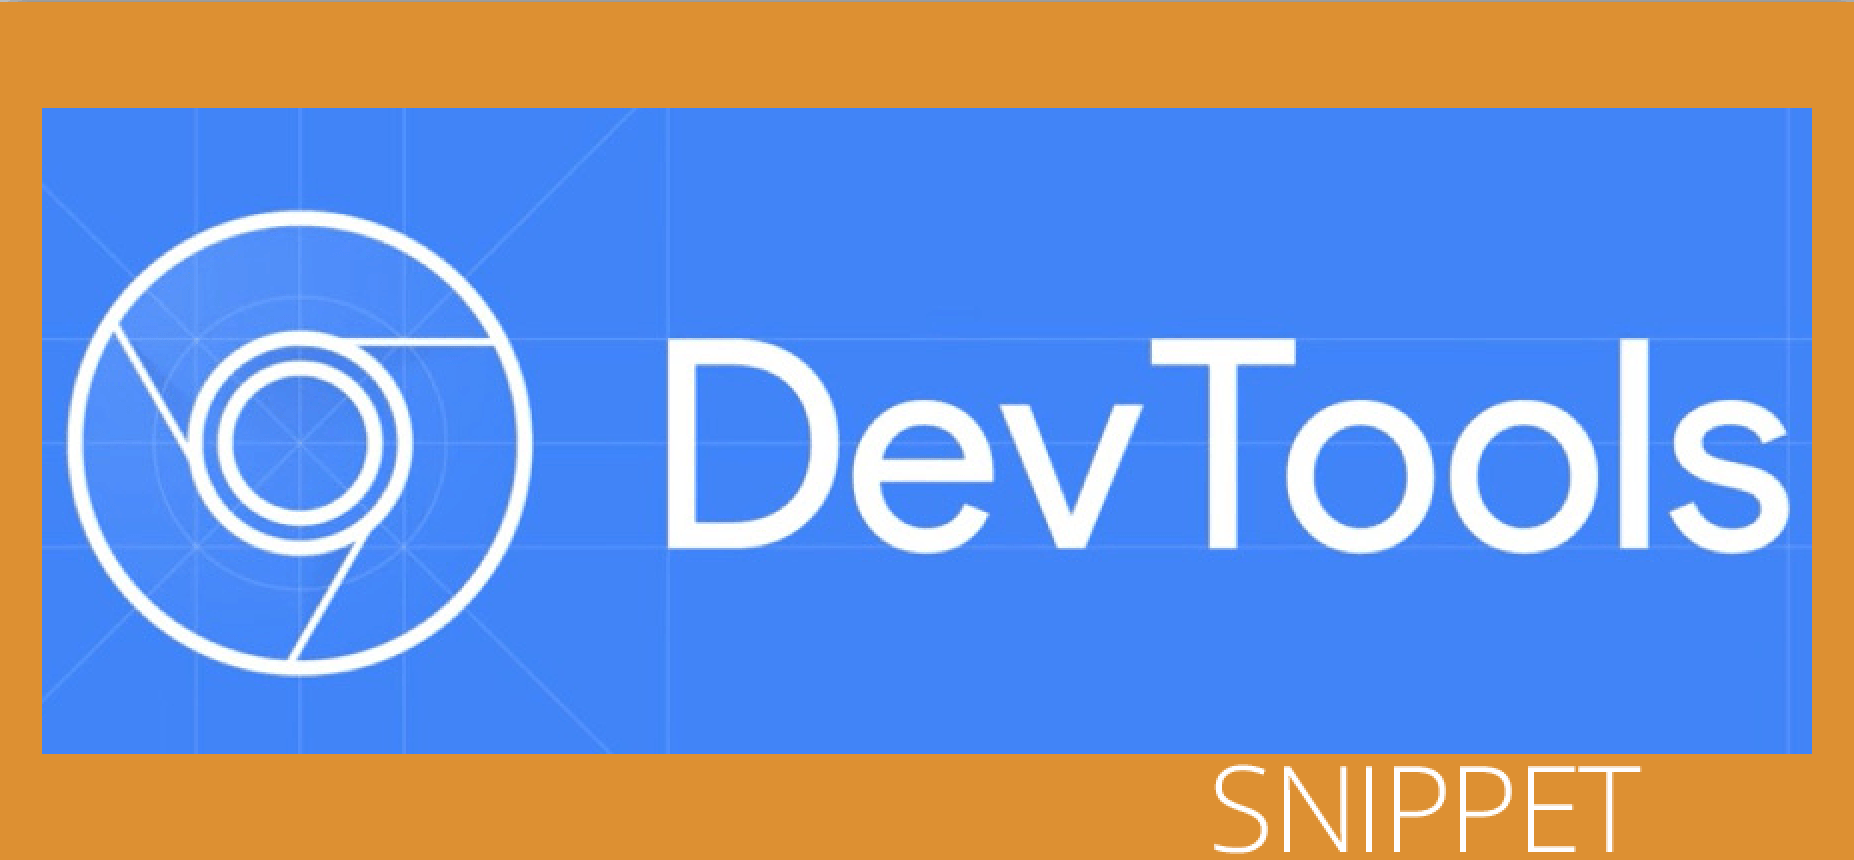 Devtools Code Snippets and its benefit